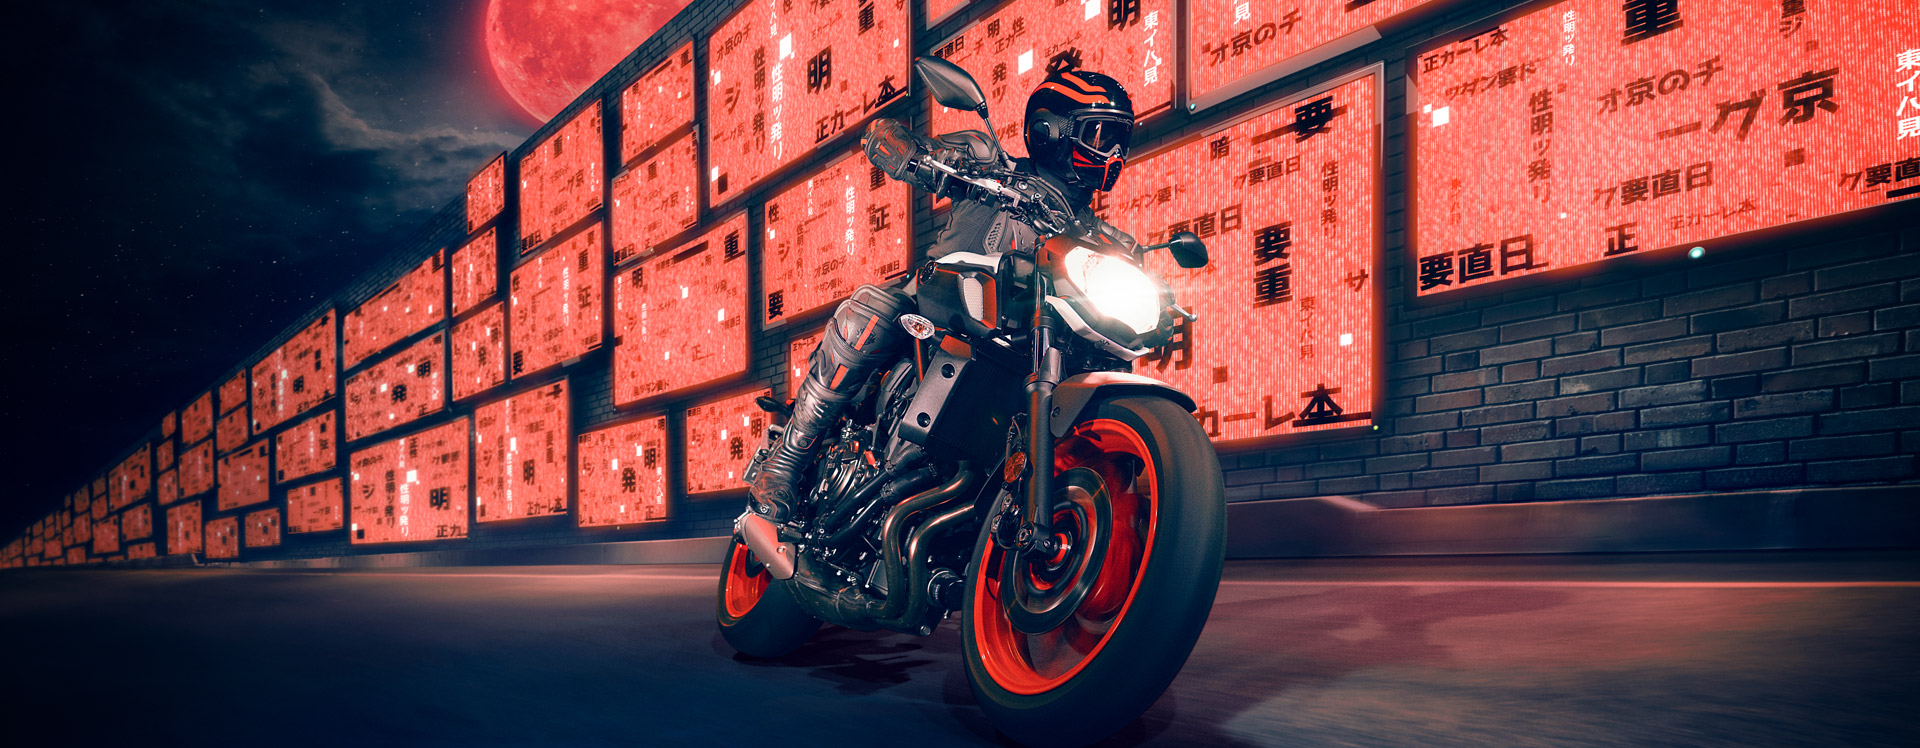 2019 Yamaha MT-07 Hyper Naked Motorcycle - Model Home